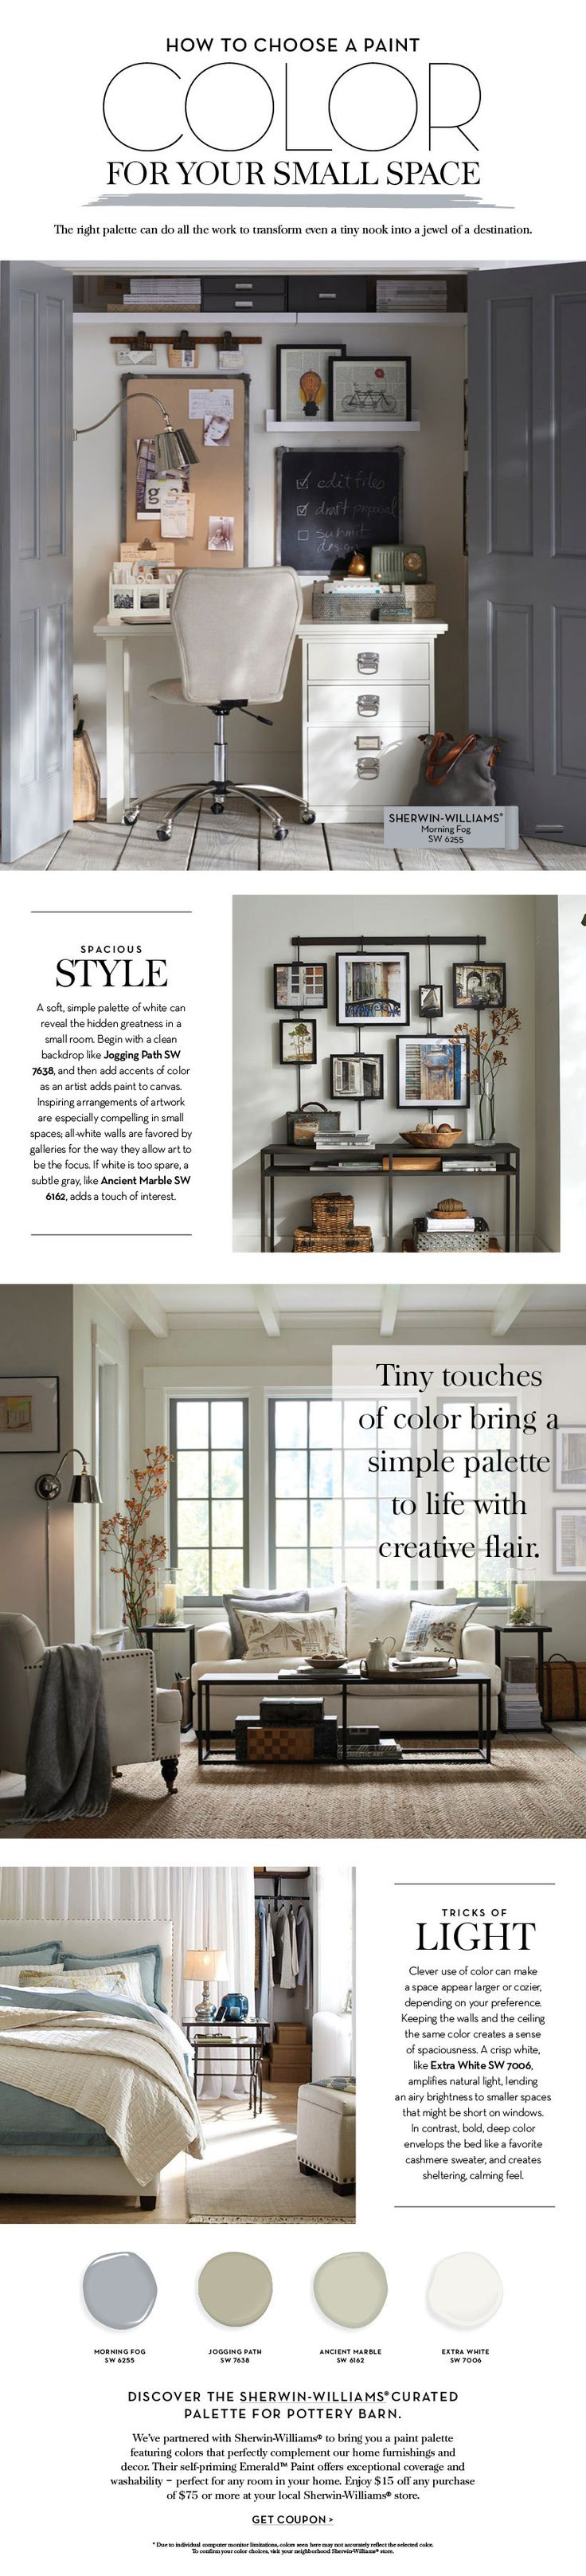 How to paint an apartment - Choose A Paint Color For Your Small Space Pottery Barn